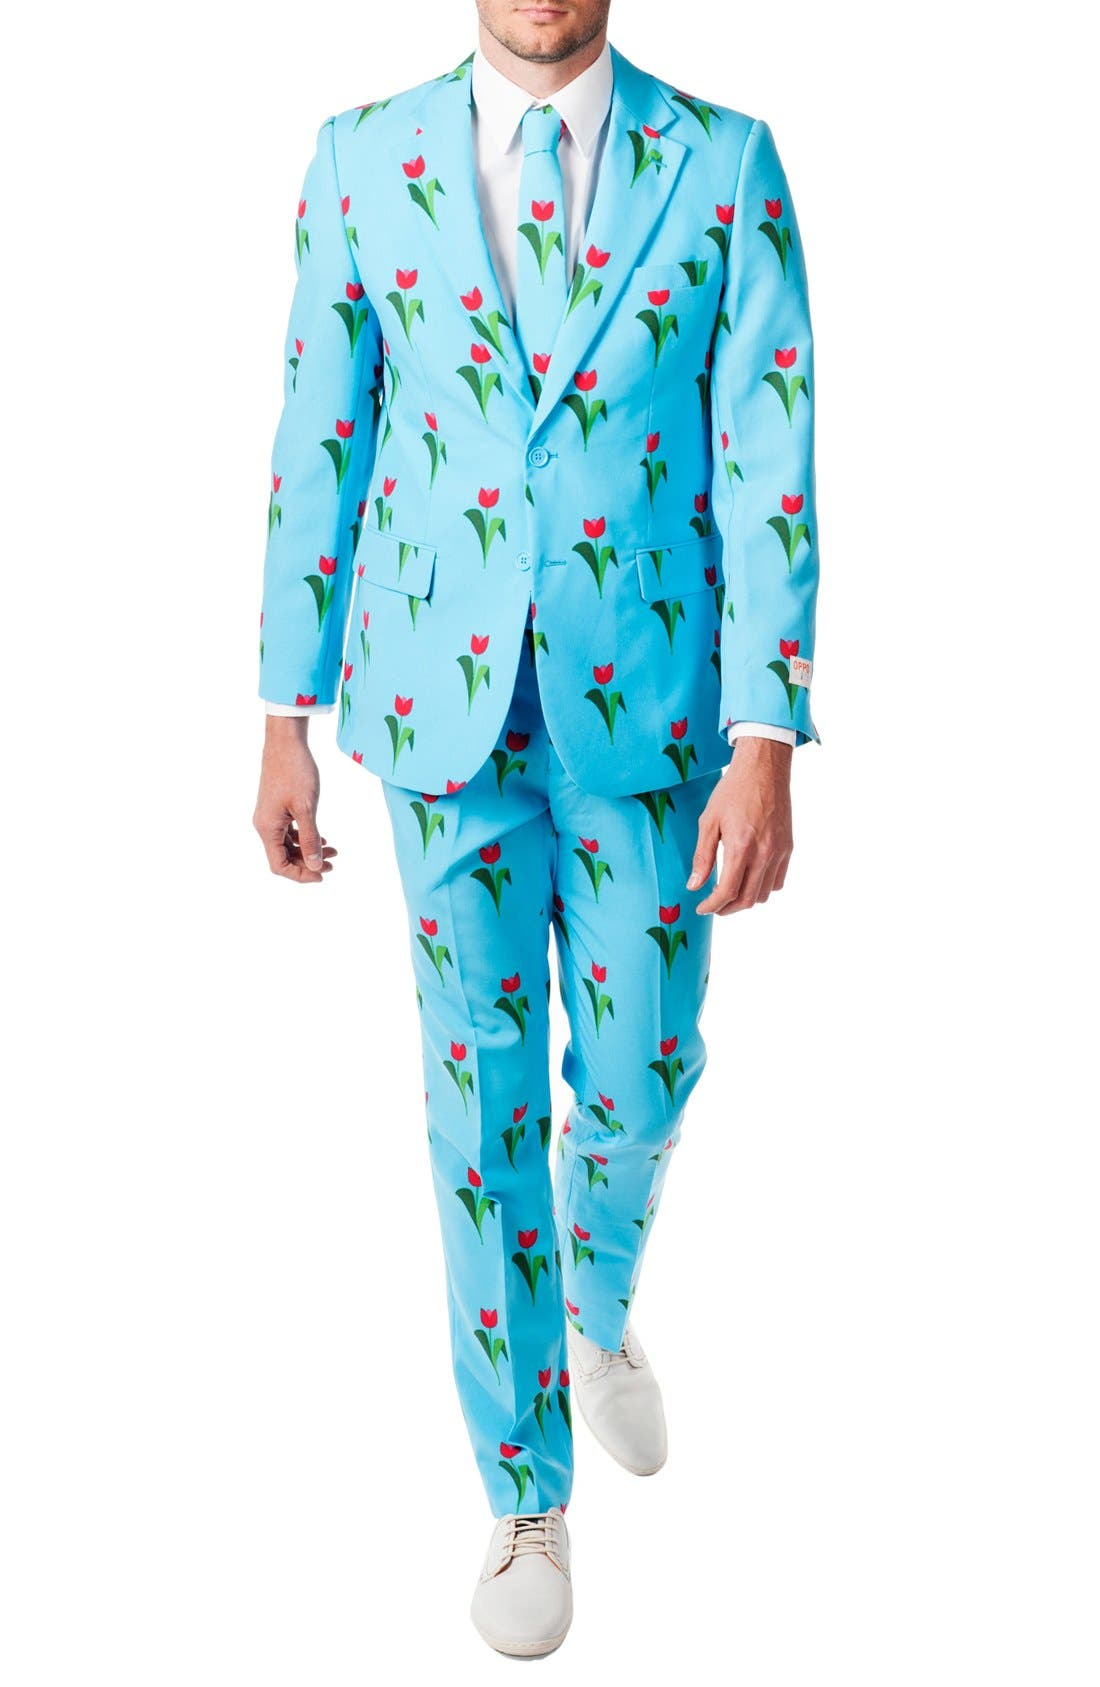 'Tulips from Amsterdam' Trim Fit Two-Piece Suit with Tie,                             Main thumbnail 1, color,                             Blue